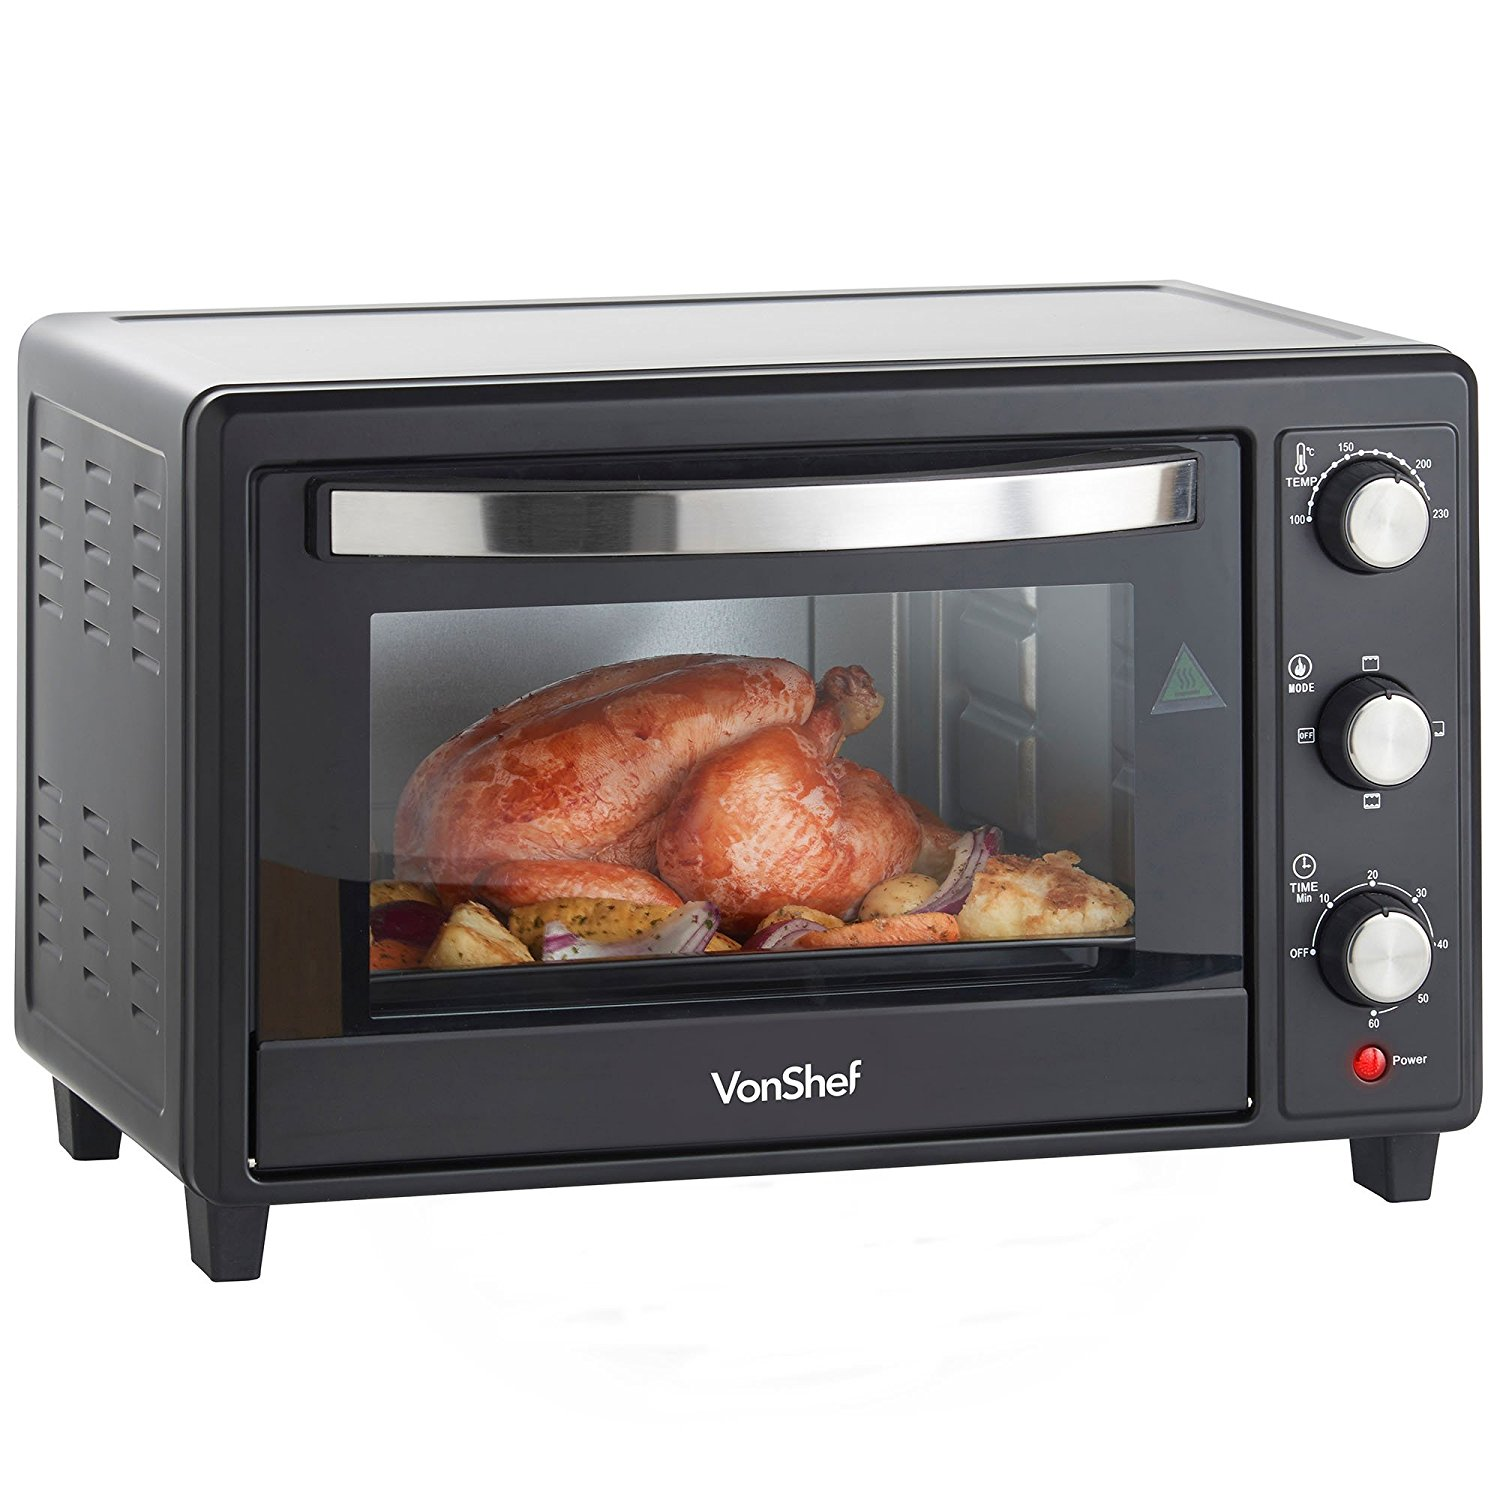 Vonshef 220 volts Toaster oven with convenection grill 220 240